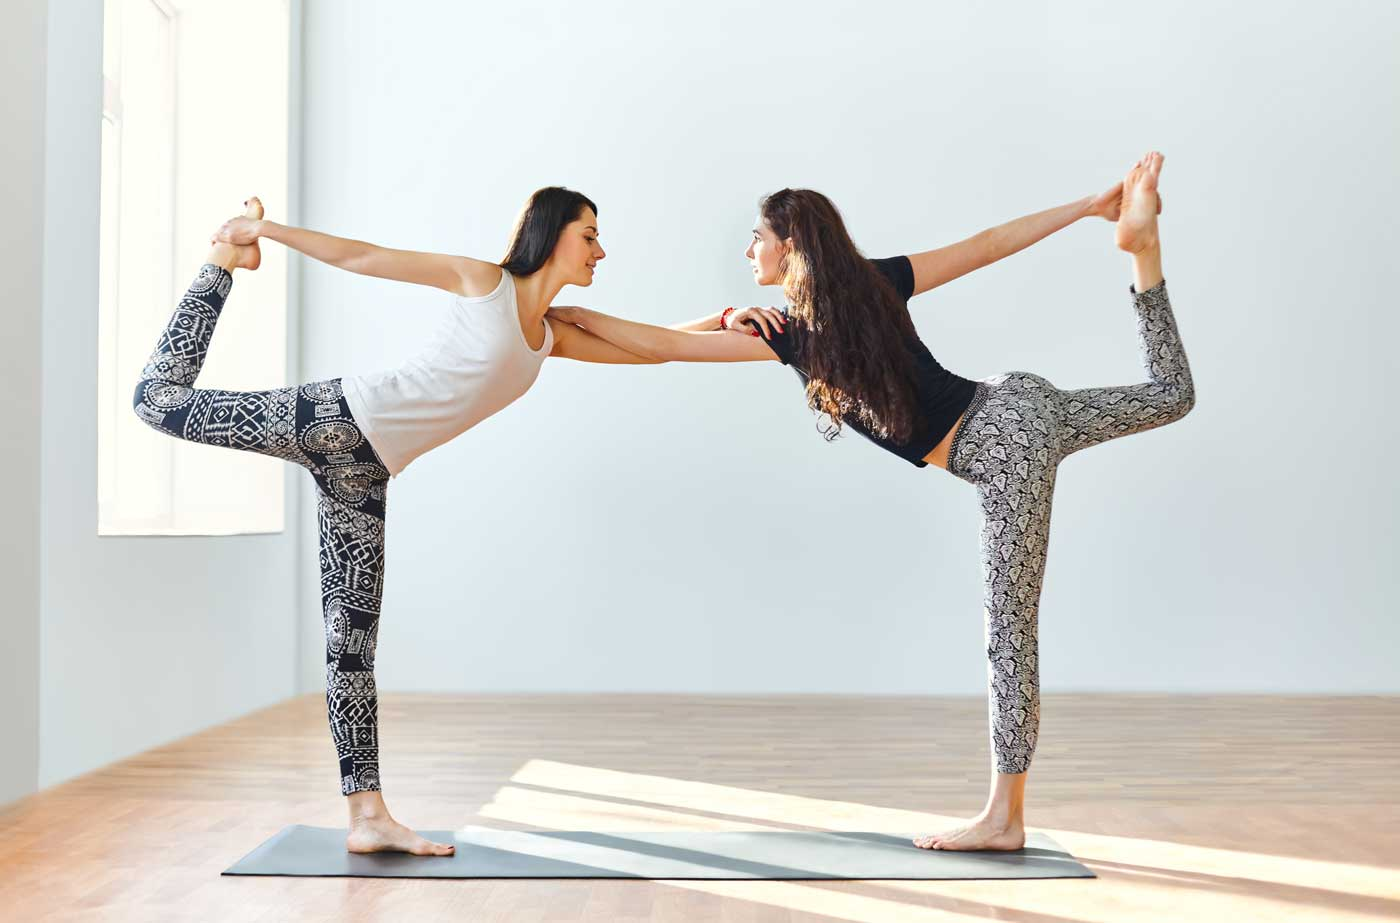 What Yoga poses are good for facial skin health? 8